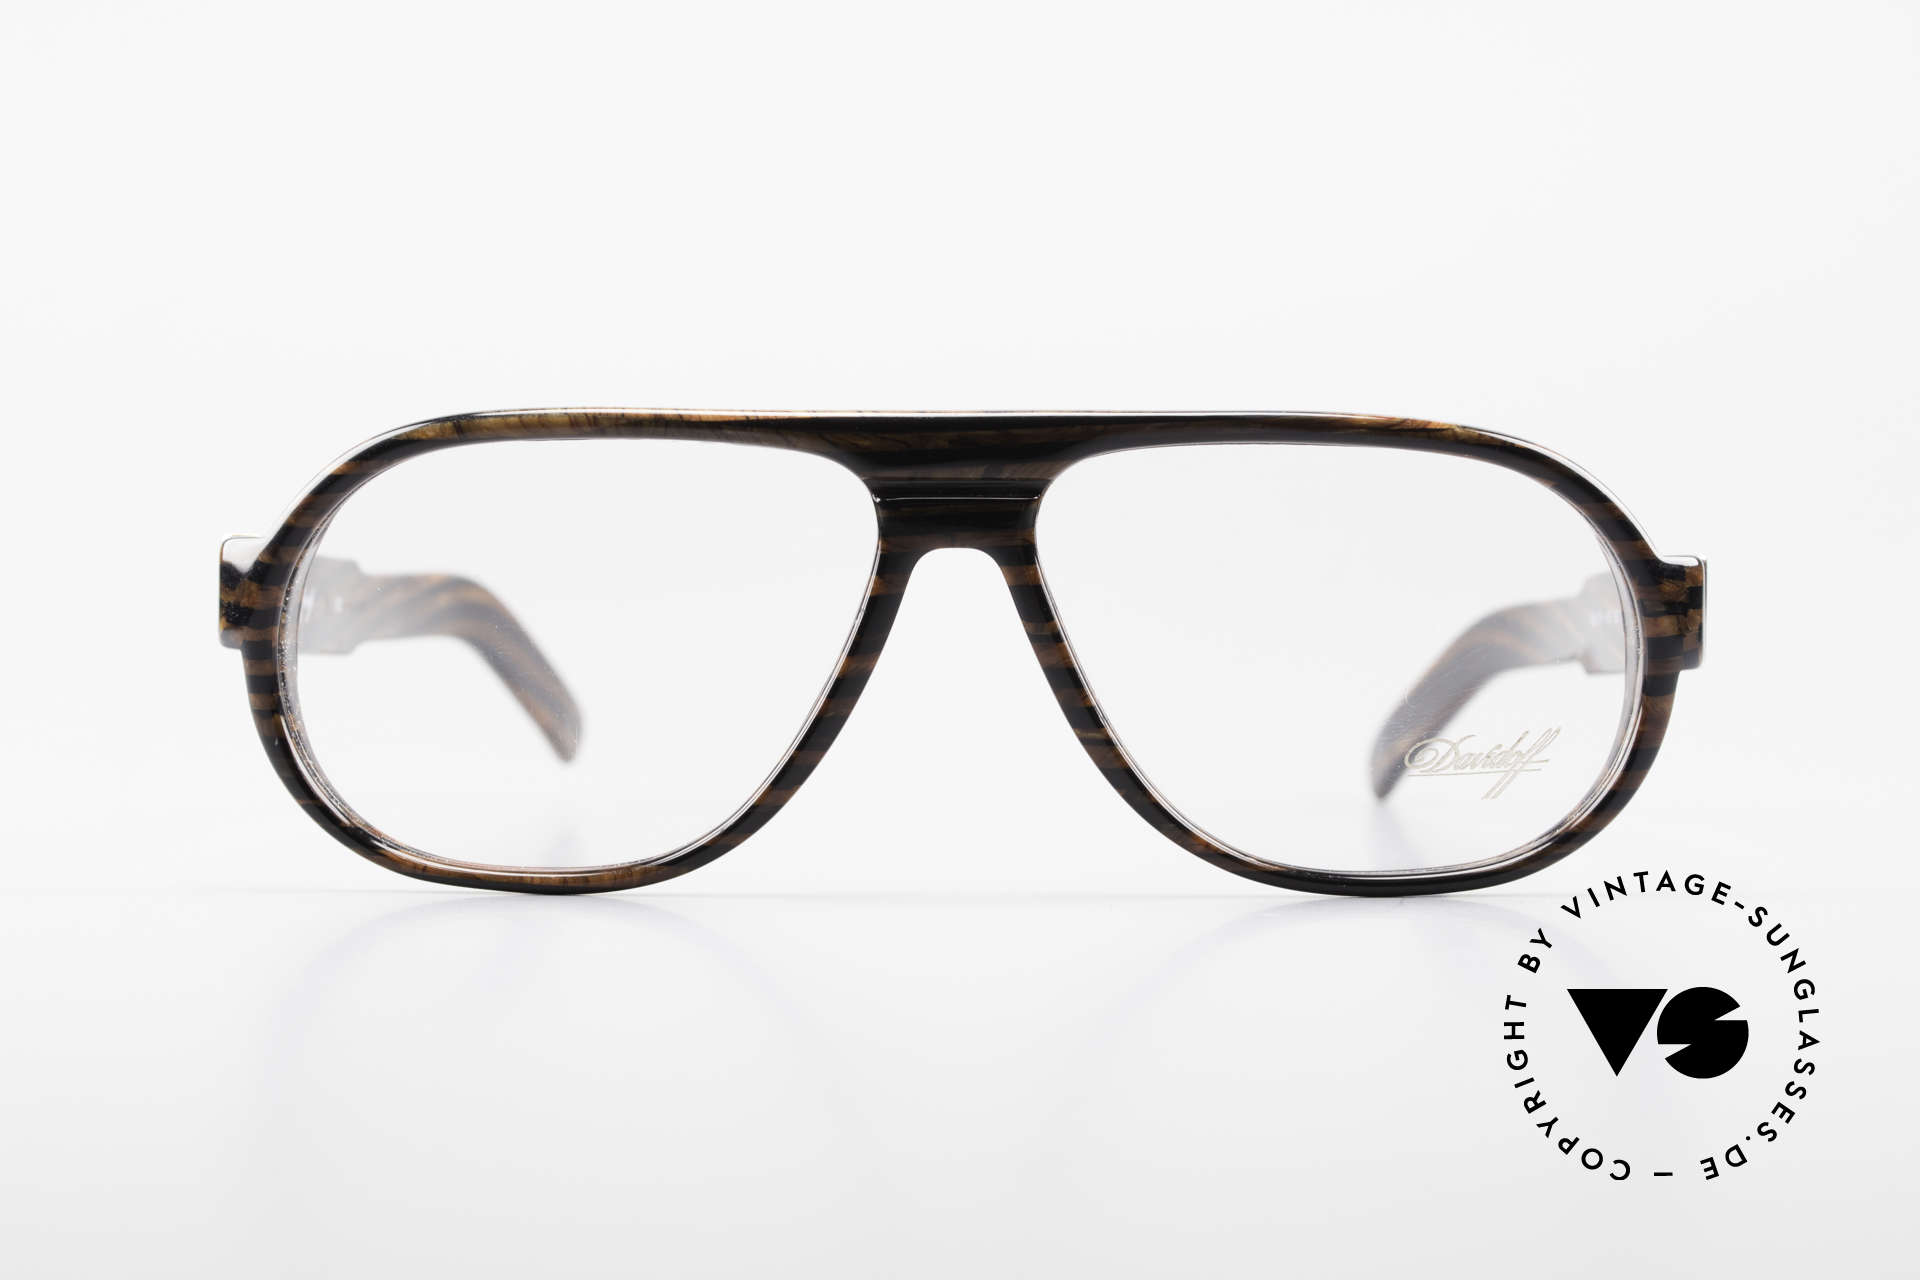 Davidoff 100 90's Men's Vintage Glasses, precious 90's ORIGINAL with noble root-wood pattern, Made for Men